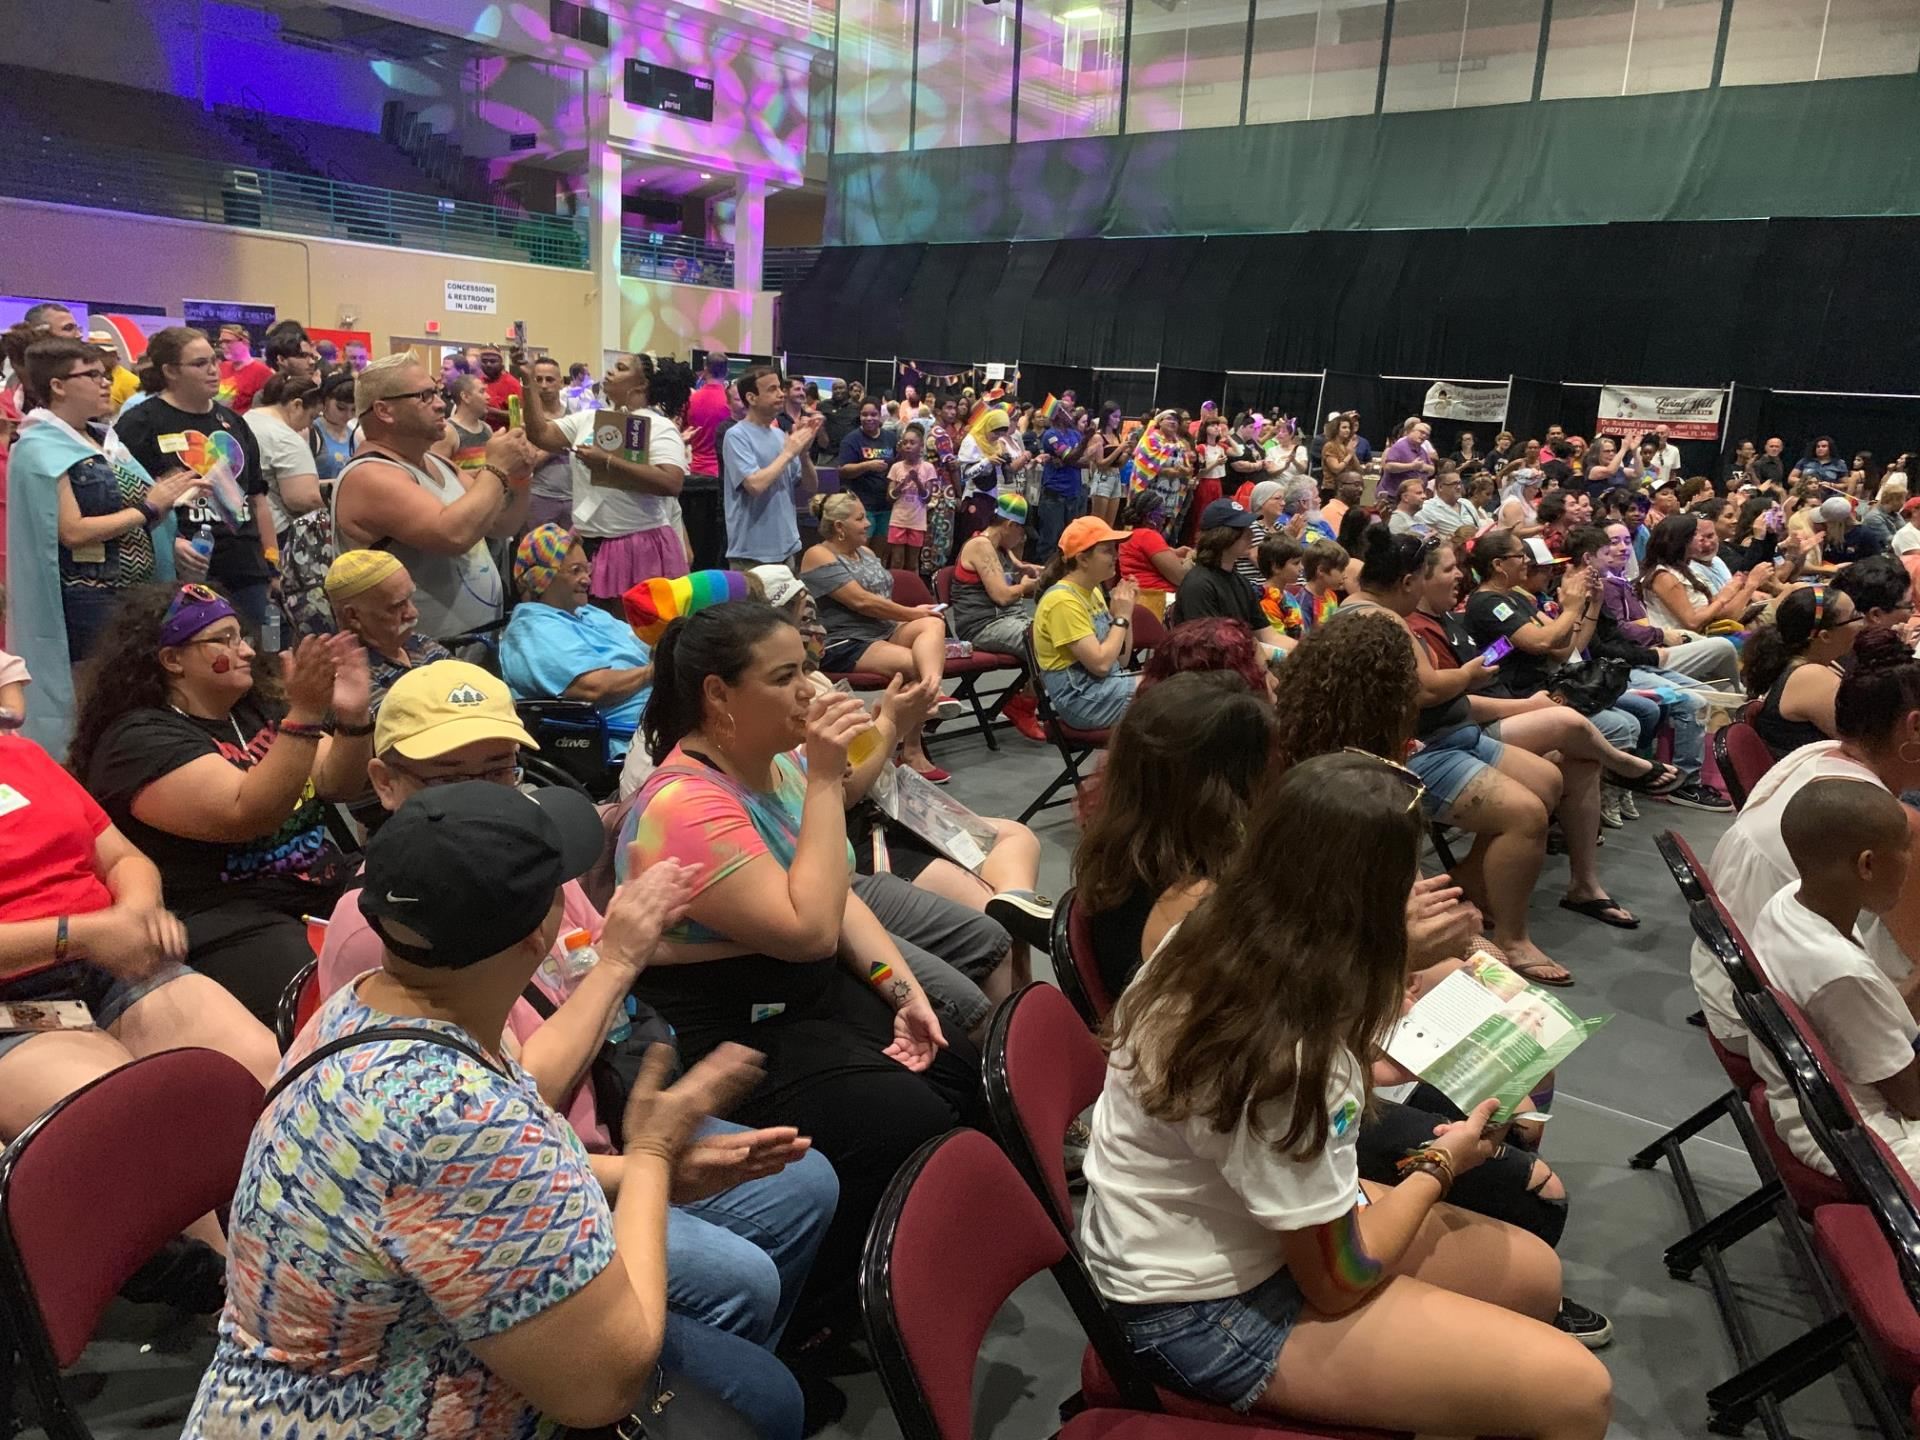 This is a photo of the crowd of attendees at Pridefest Kissimmee at the Kissimmee Civic Center